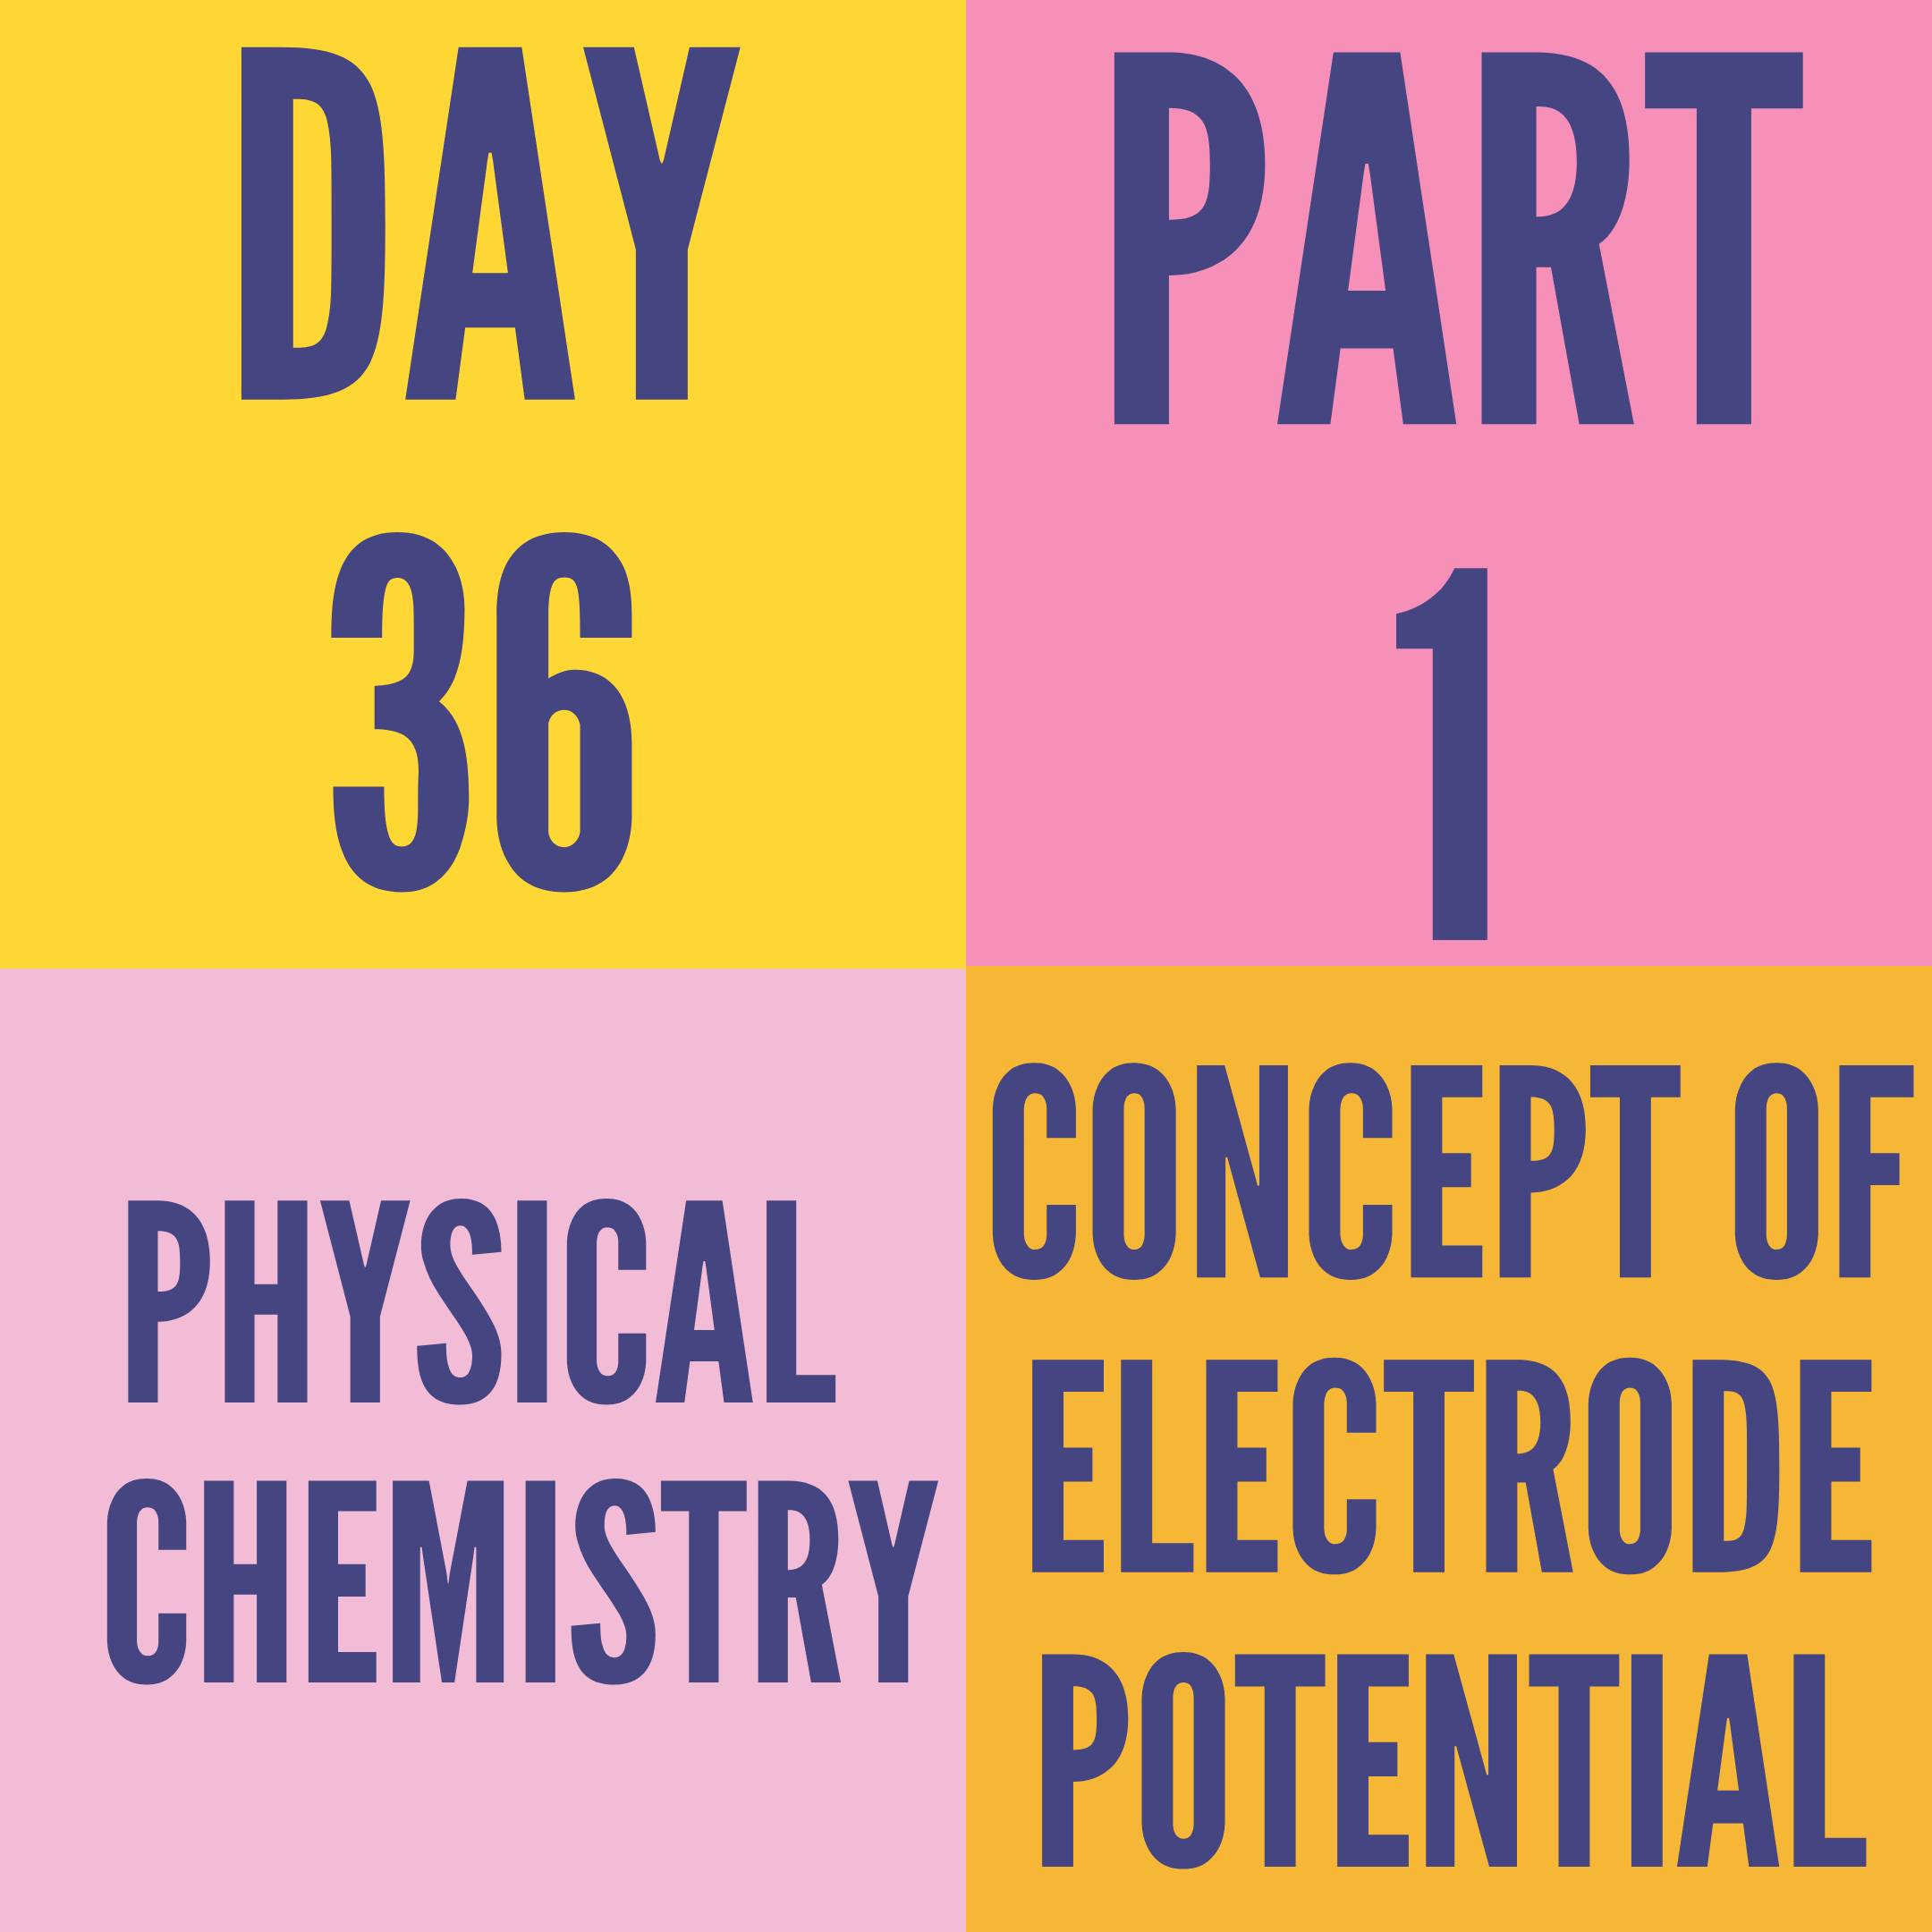 DAY-36 PART-1 CONCEPT OF ELECTRODE POTENTIAL